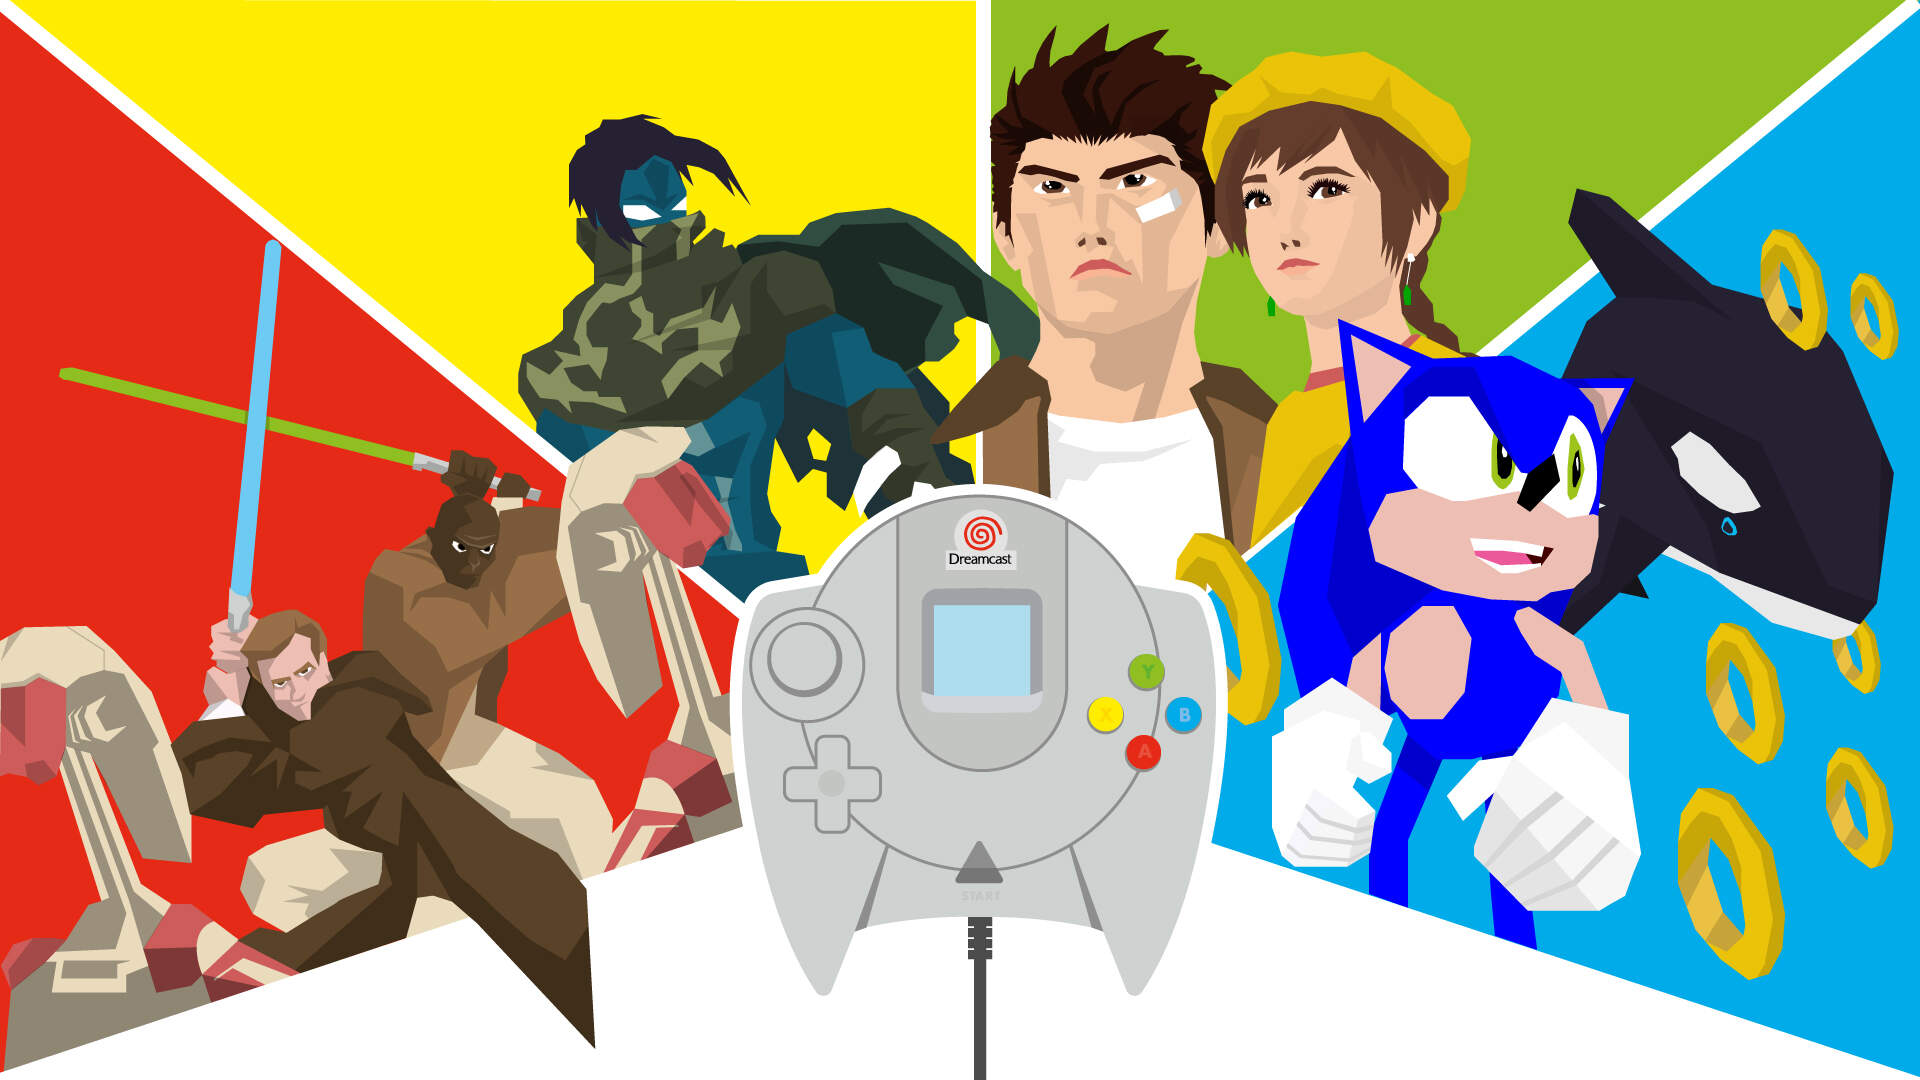 What's Your Favorite Dreamcast Game?